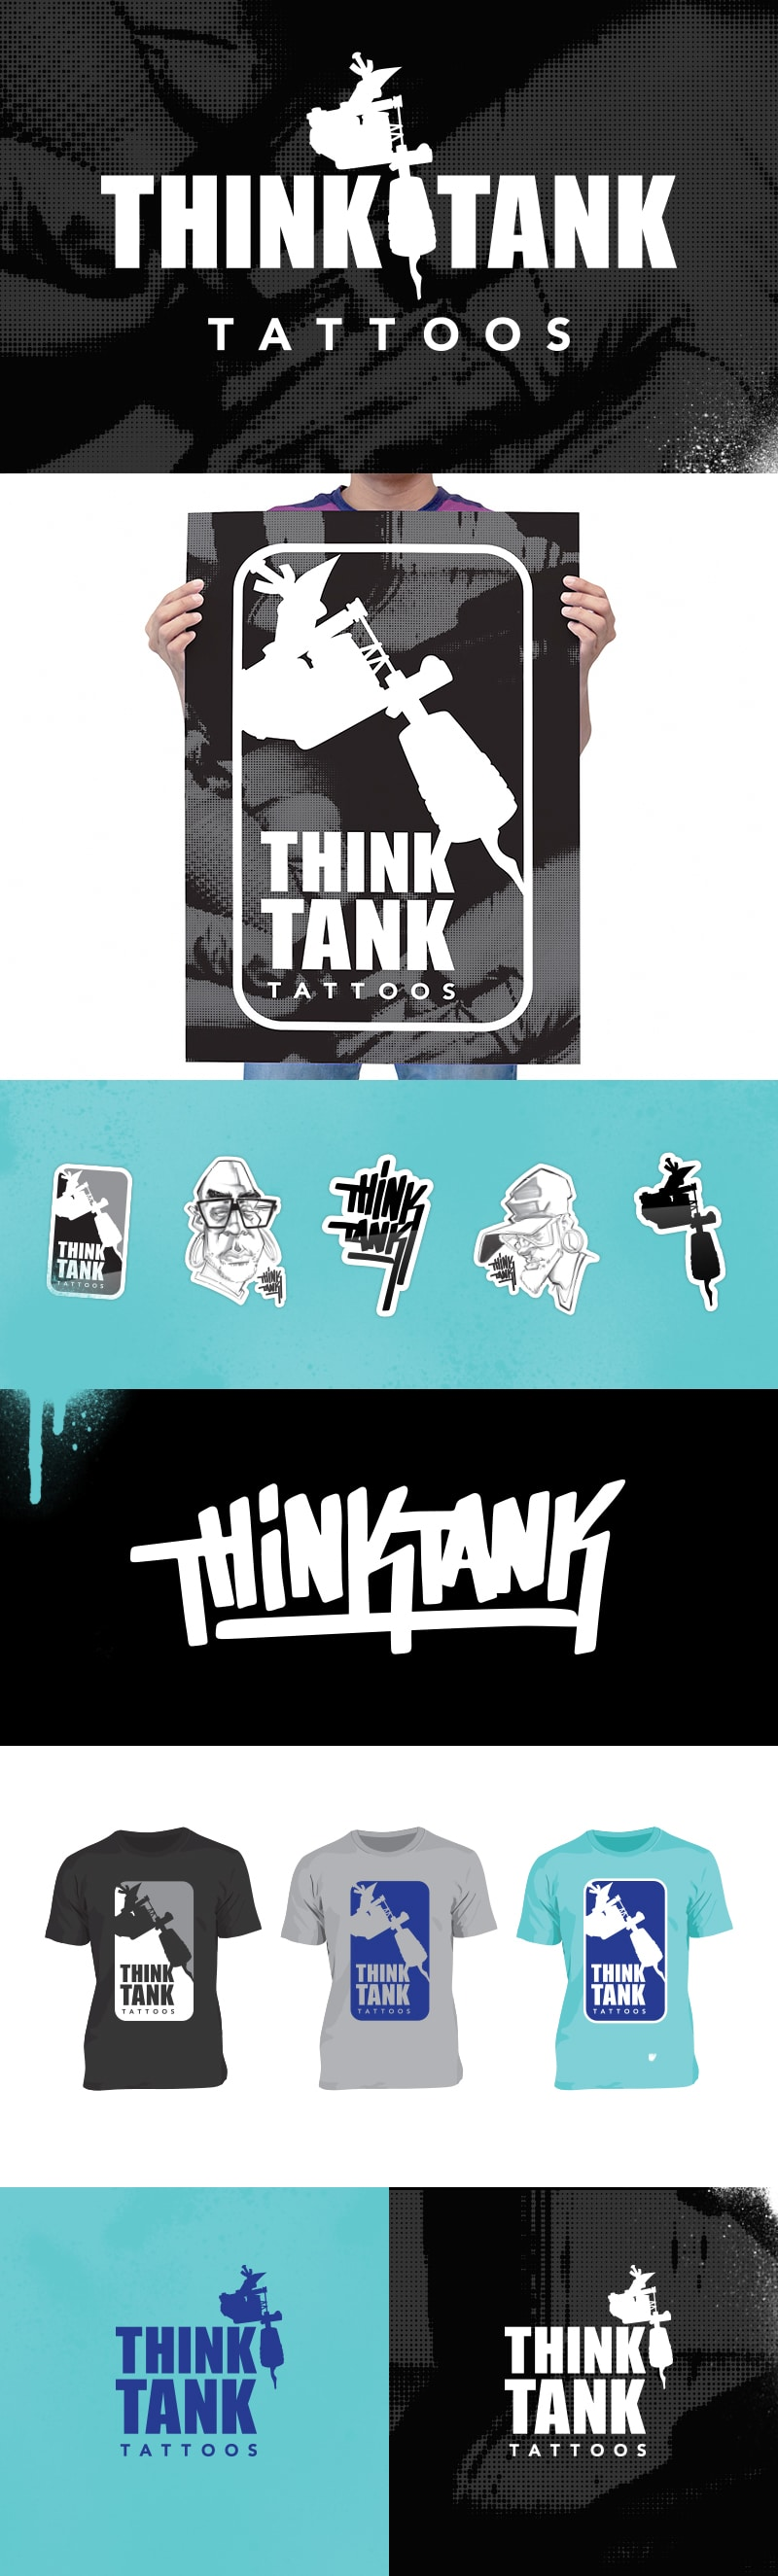 Think Tank Tattoos